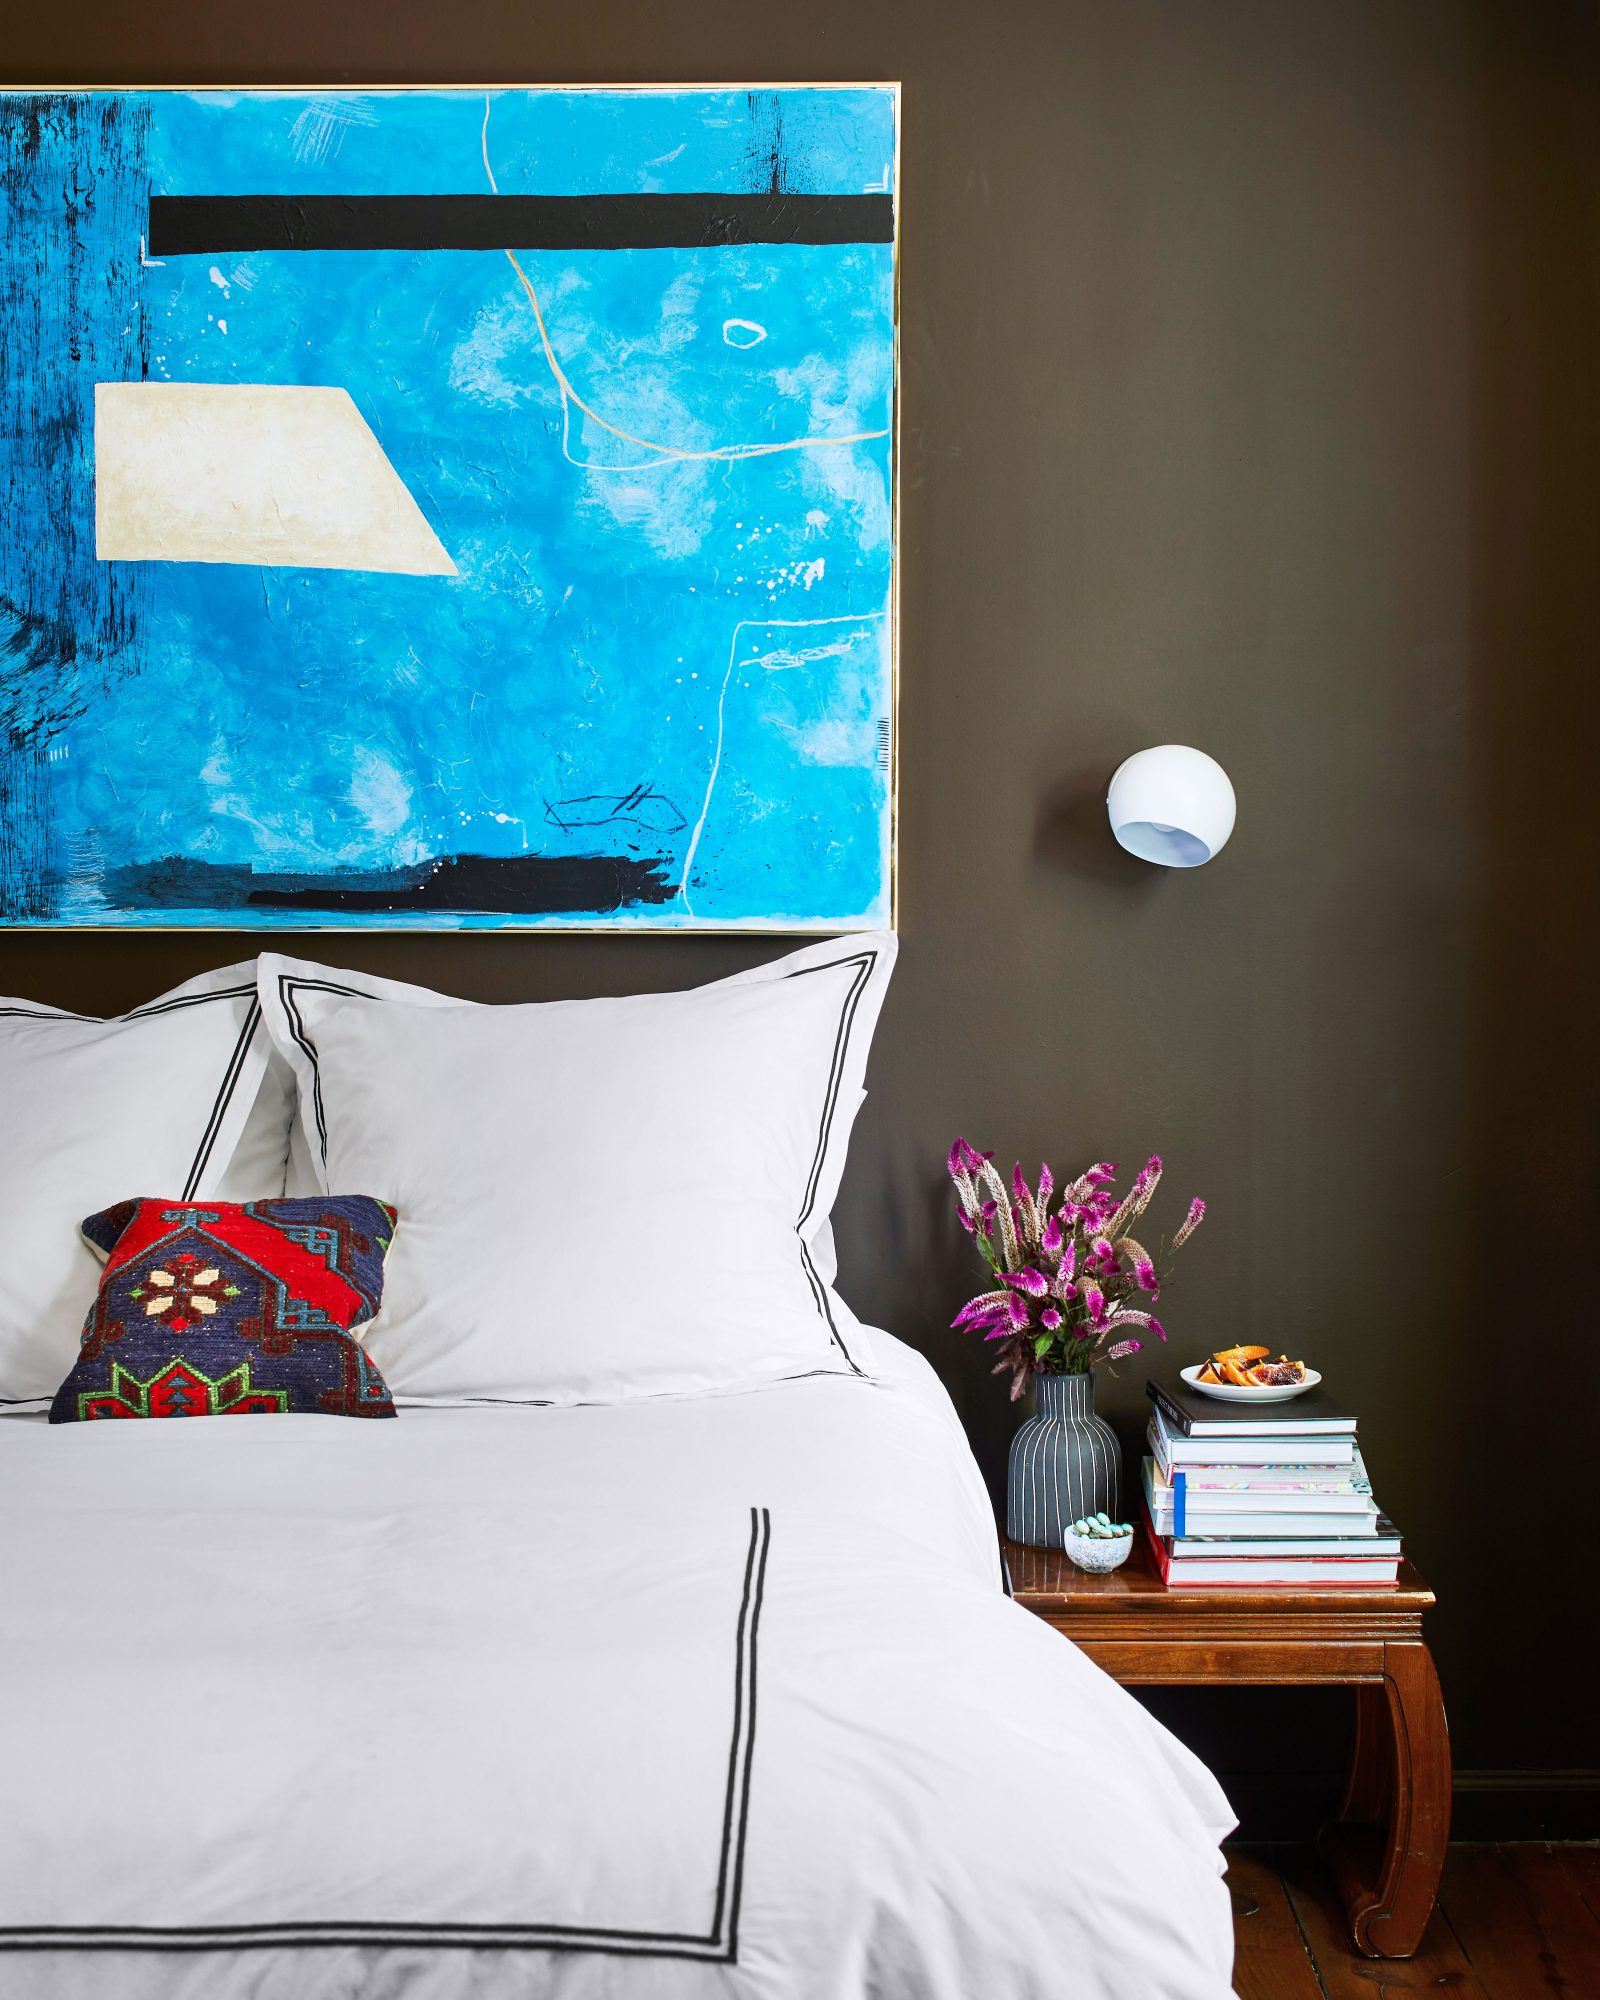 Alabama Cabin Guest Bedroom with Chocolate Brown Walls and Bold Blue Painting Above Bed